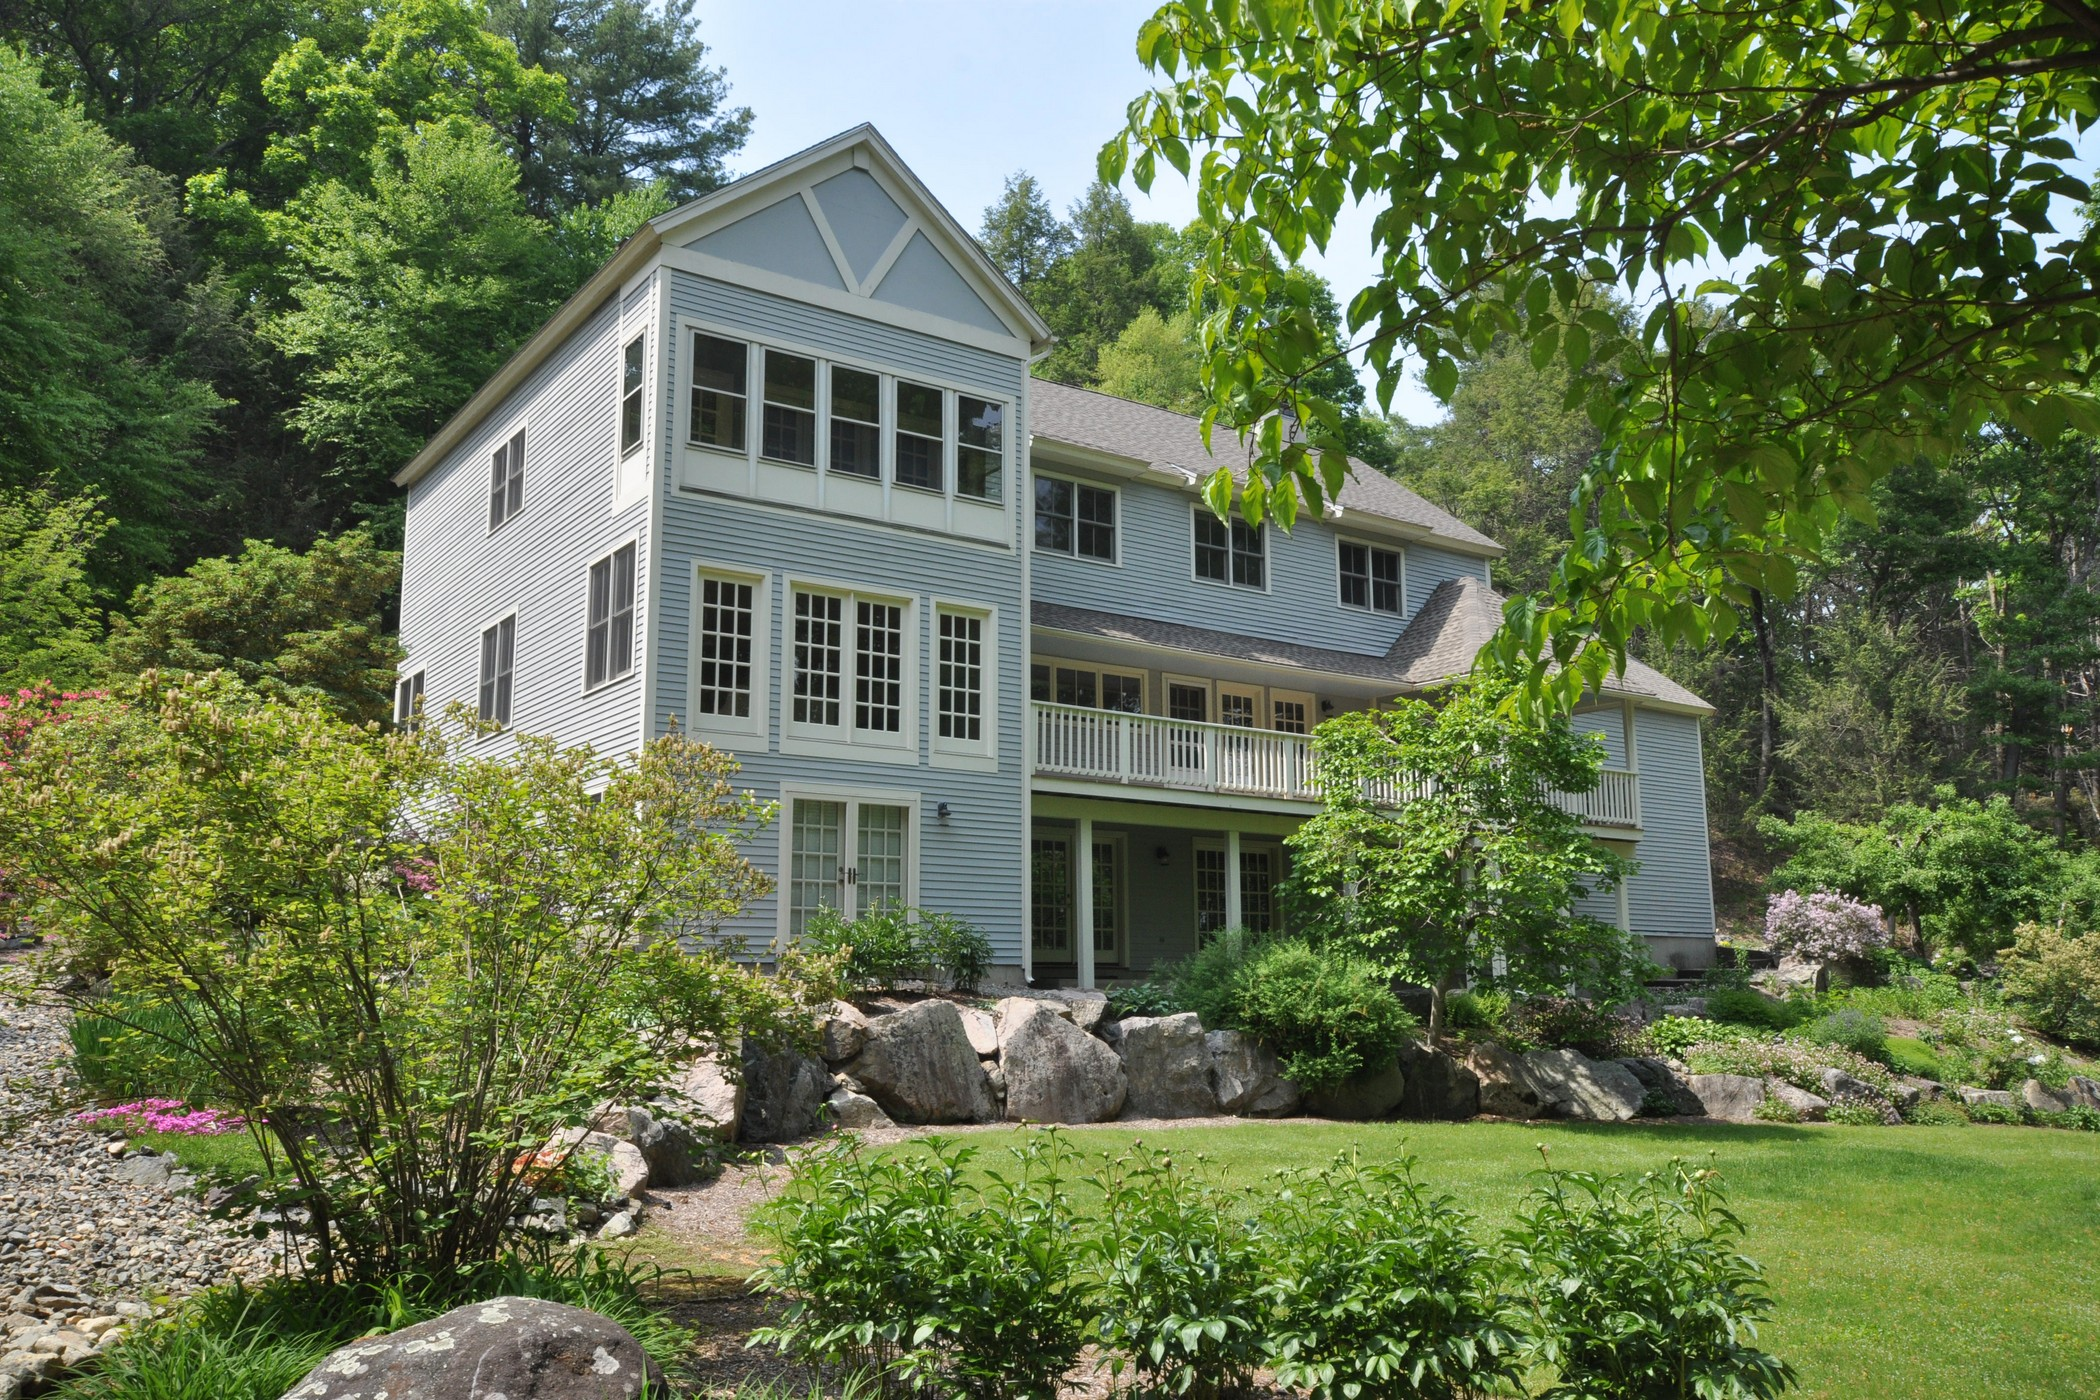 Maison unifamiliale pour l Vente à Stunning Contemporary 111 Old County Rd Lincoln, Massachusetts, 01773 États-Unis